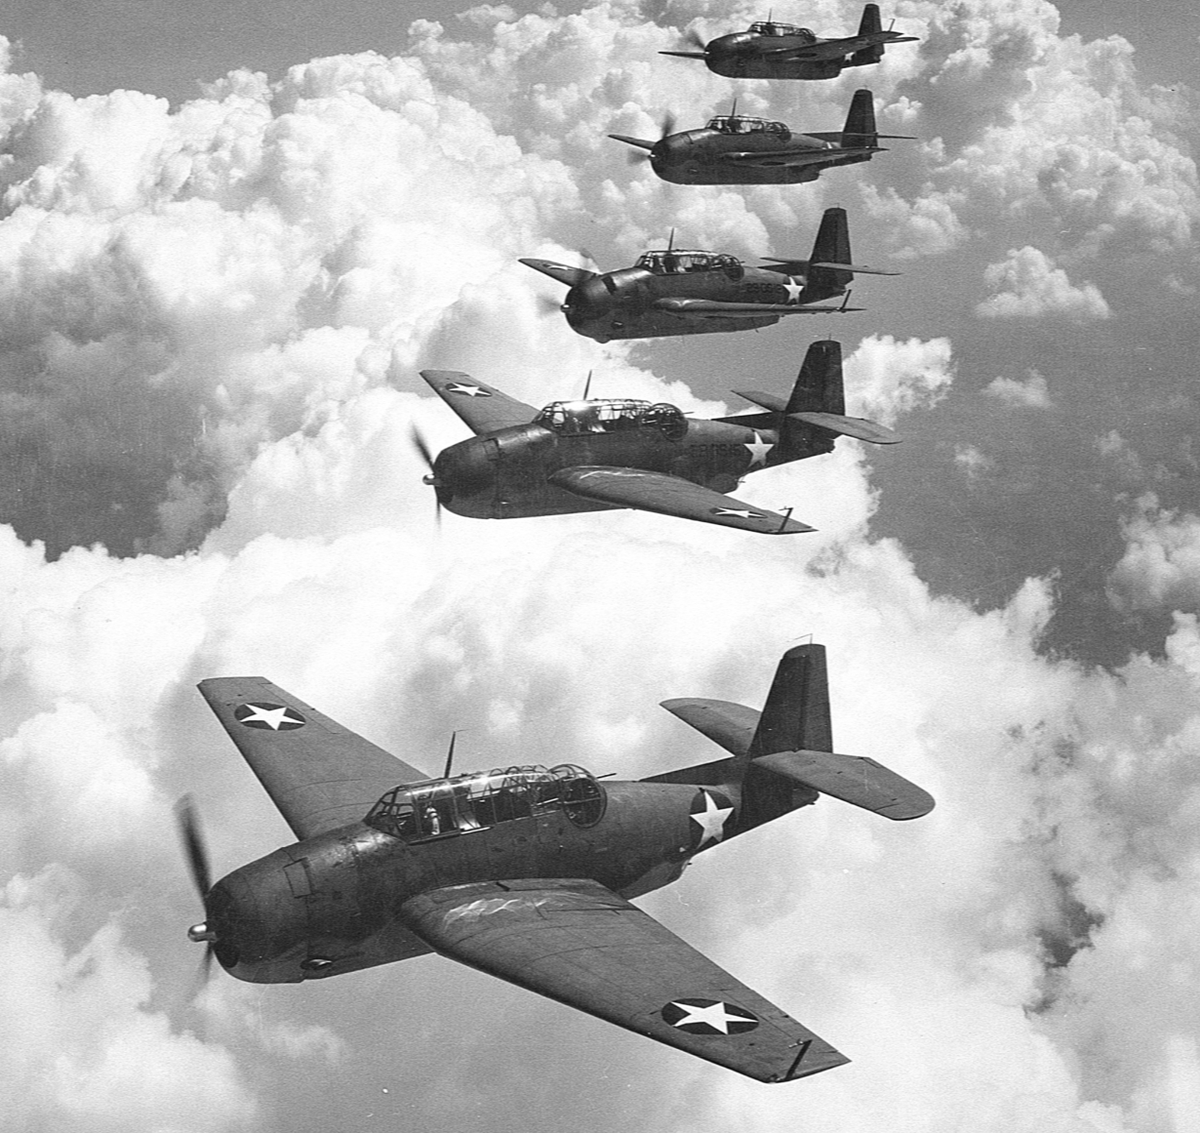 #OnThisDay in 1945 a group of US Navy planes disappears in the Bermuda Triangle and so people decide to turn it into a whole thing #OTD